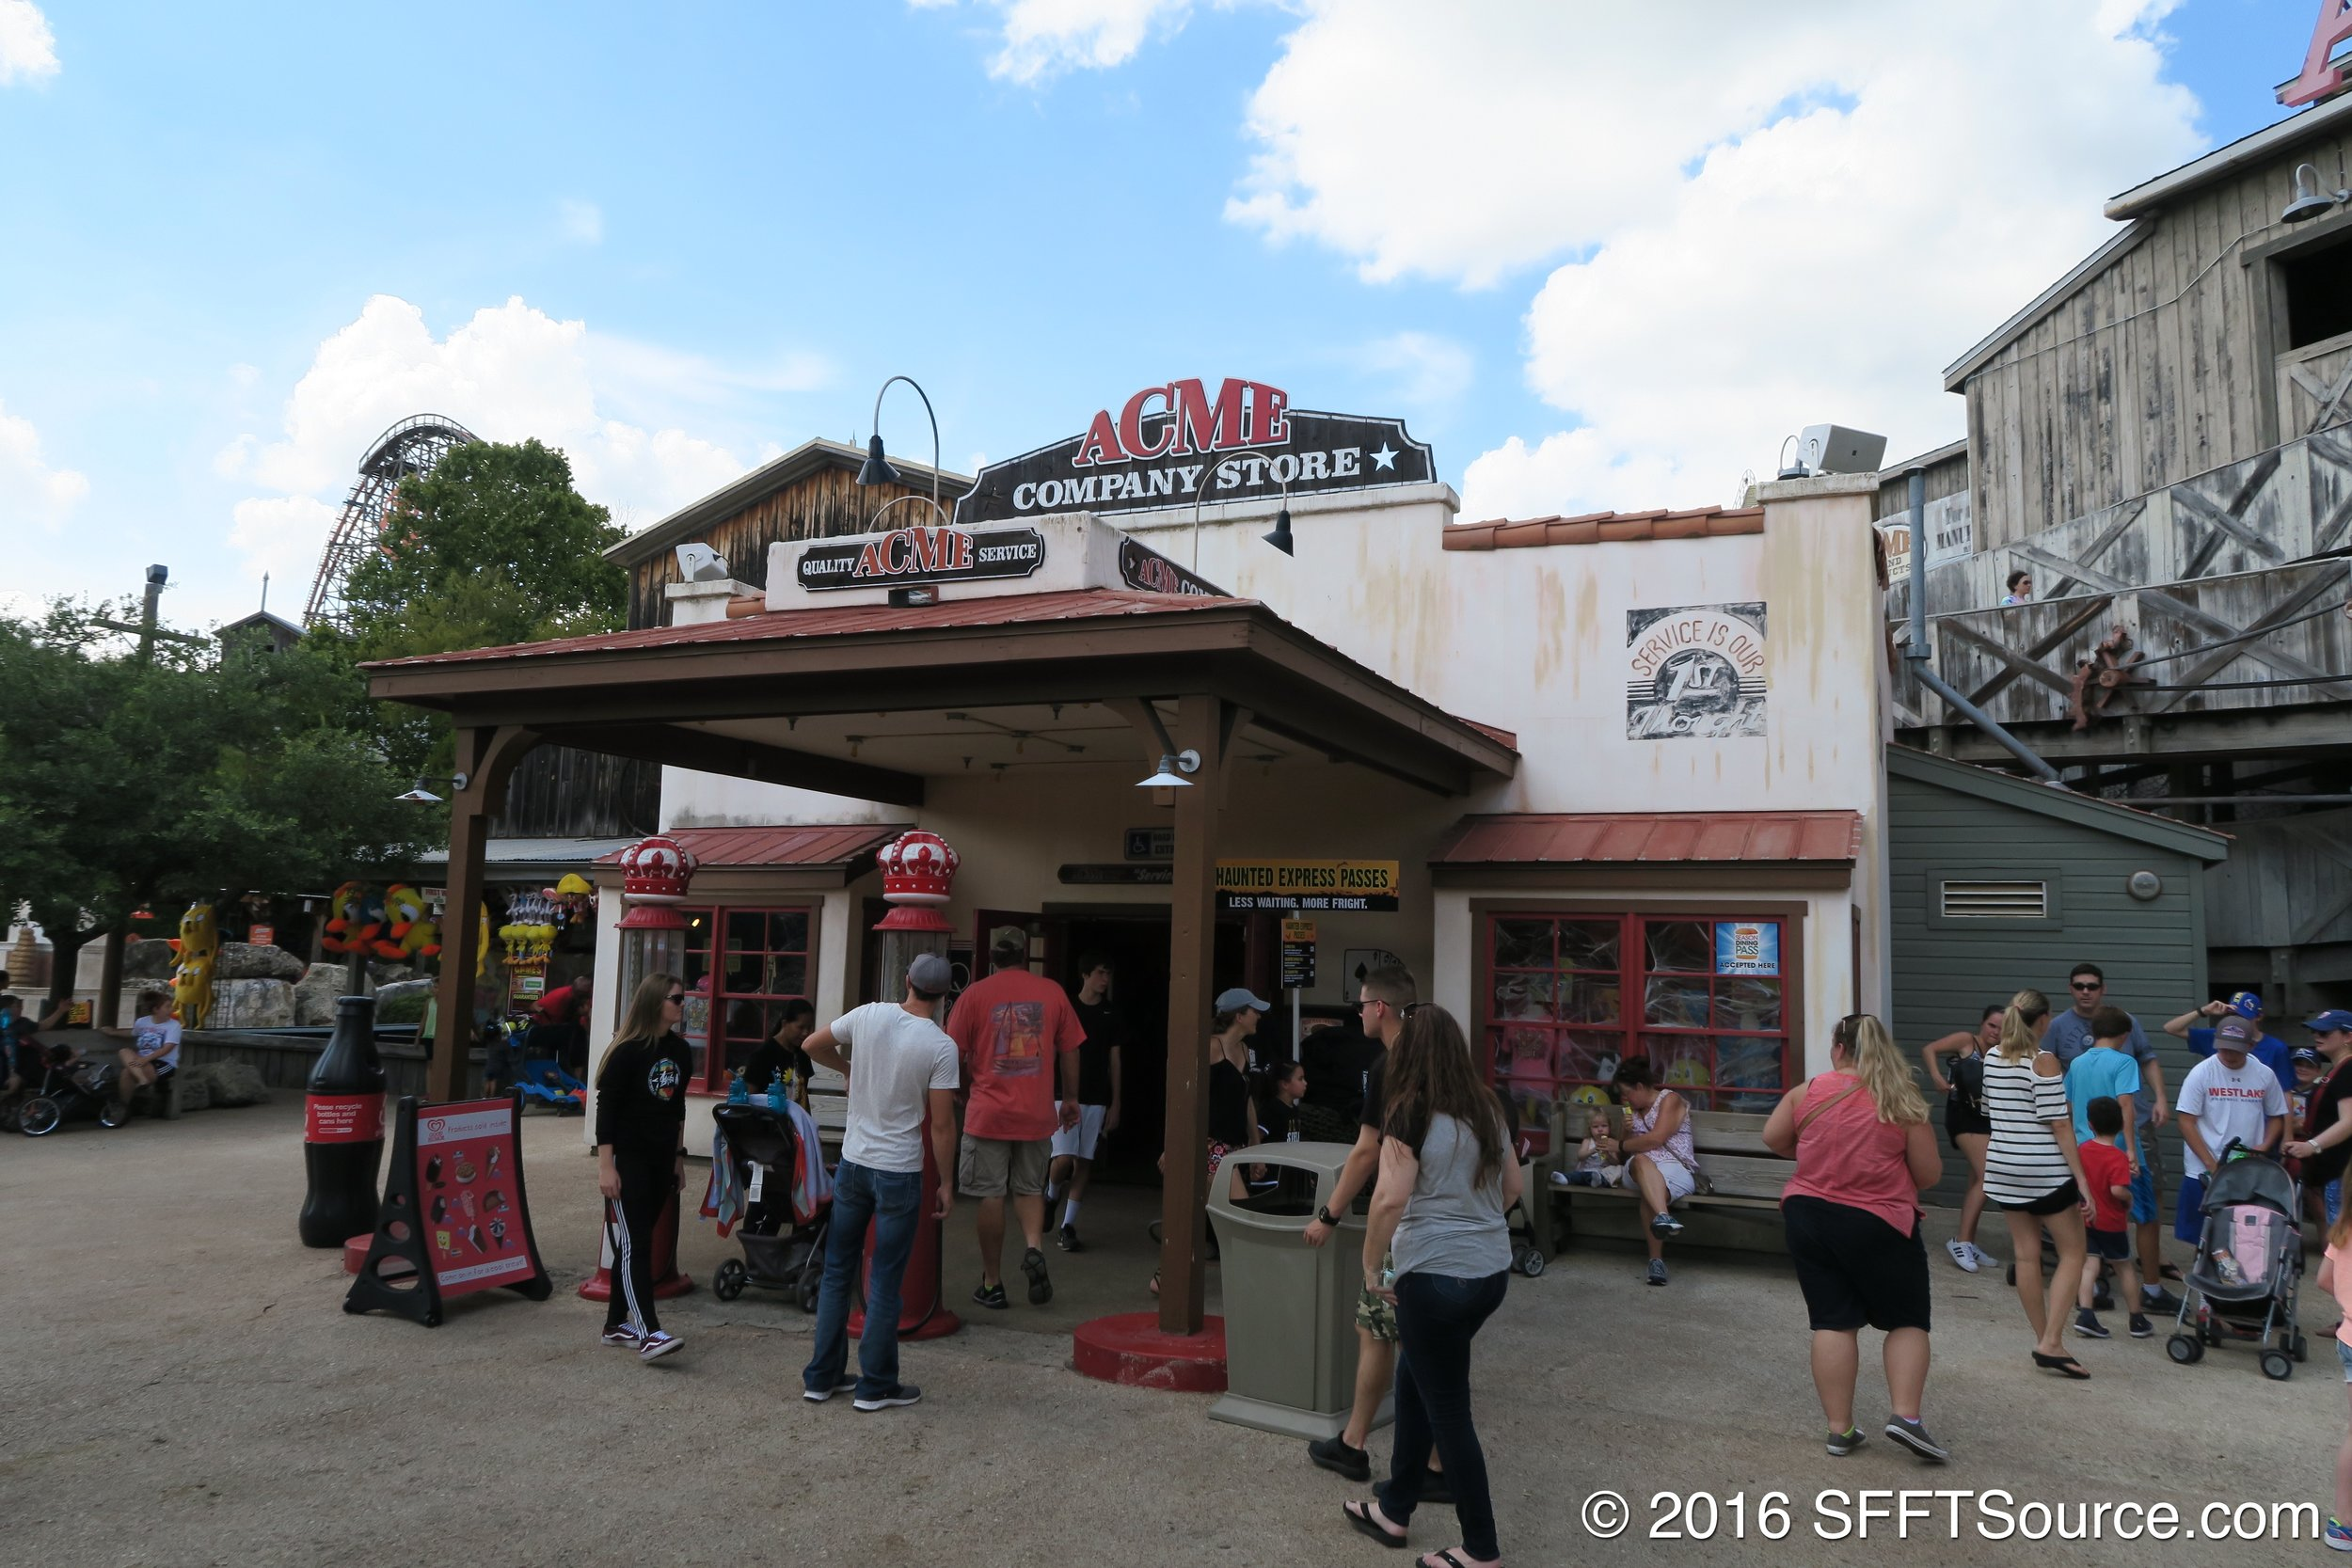 ACME Company Store is located in Crackaxle Canyon.